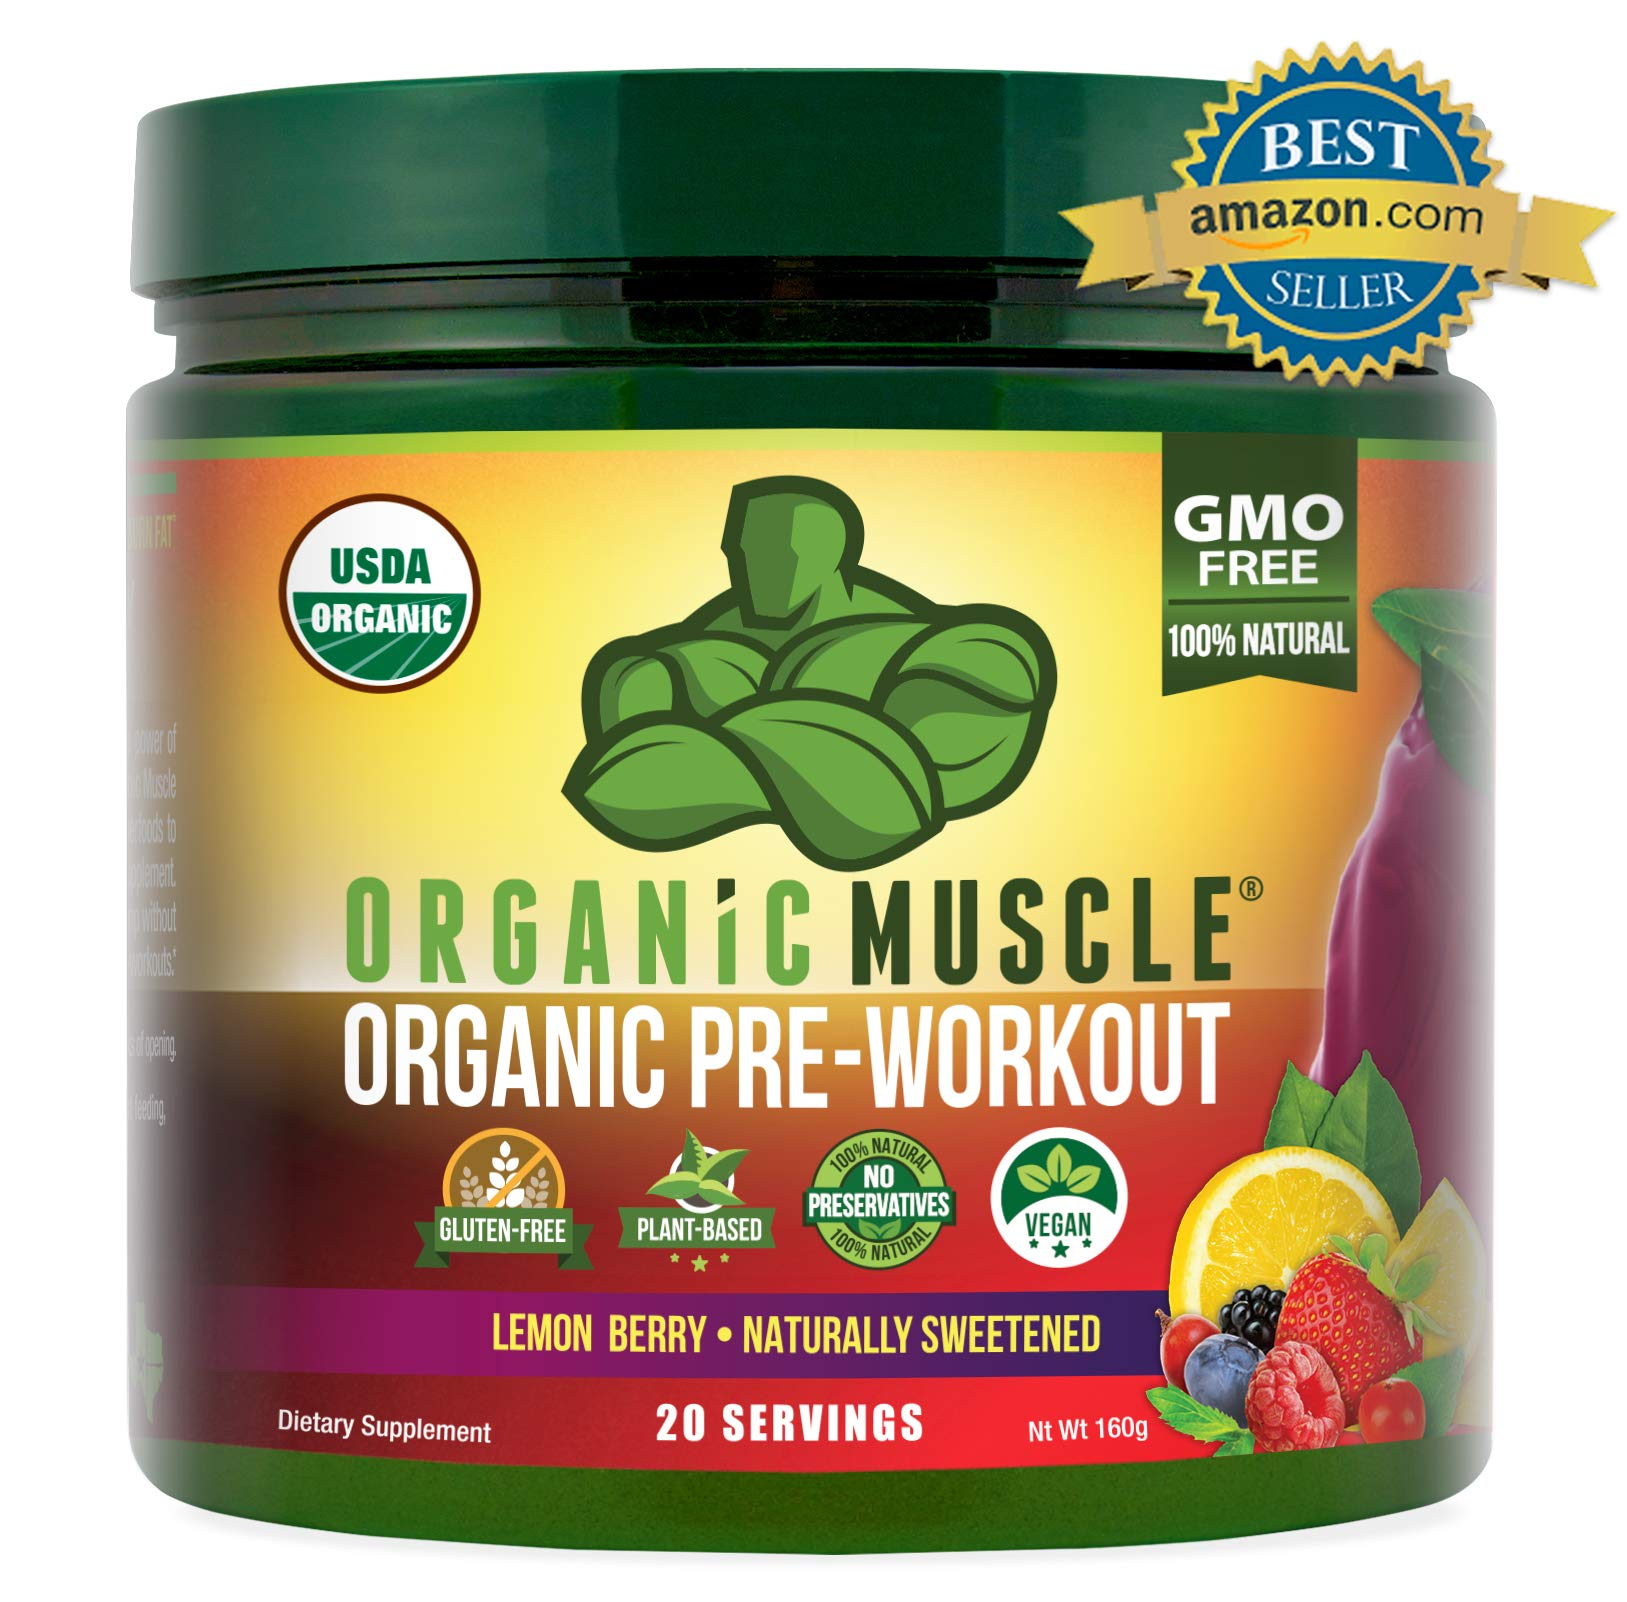 ORGANIC MUSCLE #1 Rated Organic Pre Workout Powder-Natural Vegan Keto Pre-Workout & Organic Energy Supplement for Men & Women- Non-GMO, Paleo, Gluten Free, Plant Based -Lemon Berry -160g by Organic Muscle